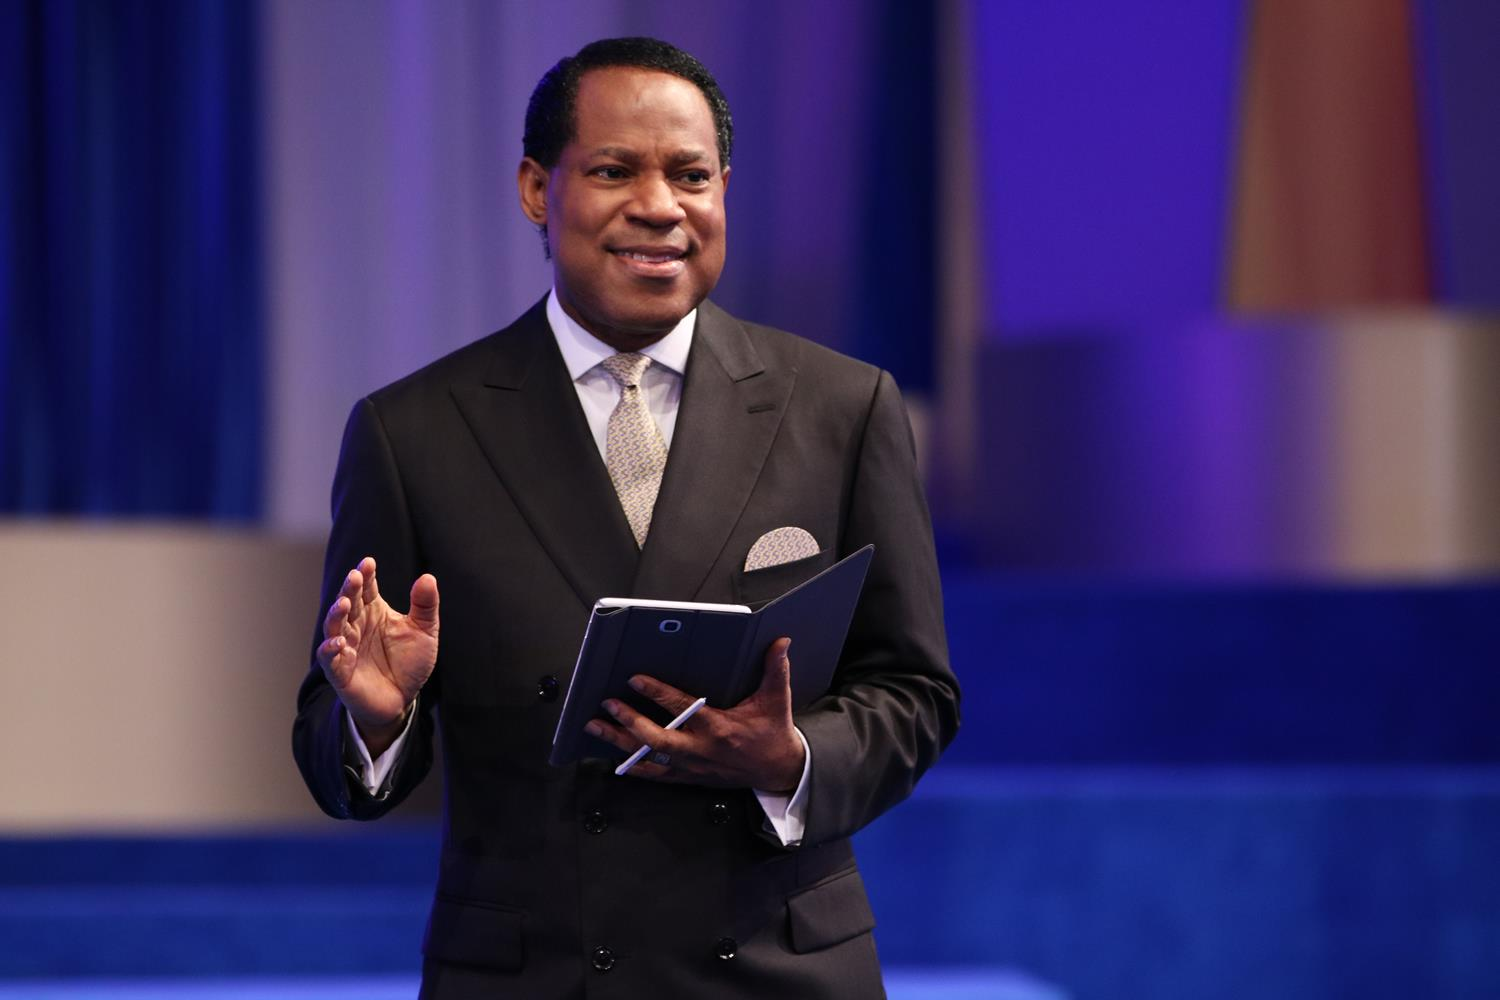 #Repost: Pastor Chris Makes Fearful Revelations About COVID-19, New Vaccine, 5G, Antichrist